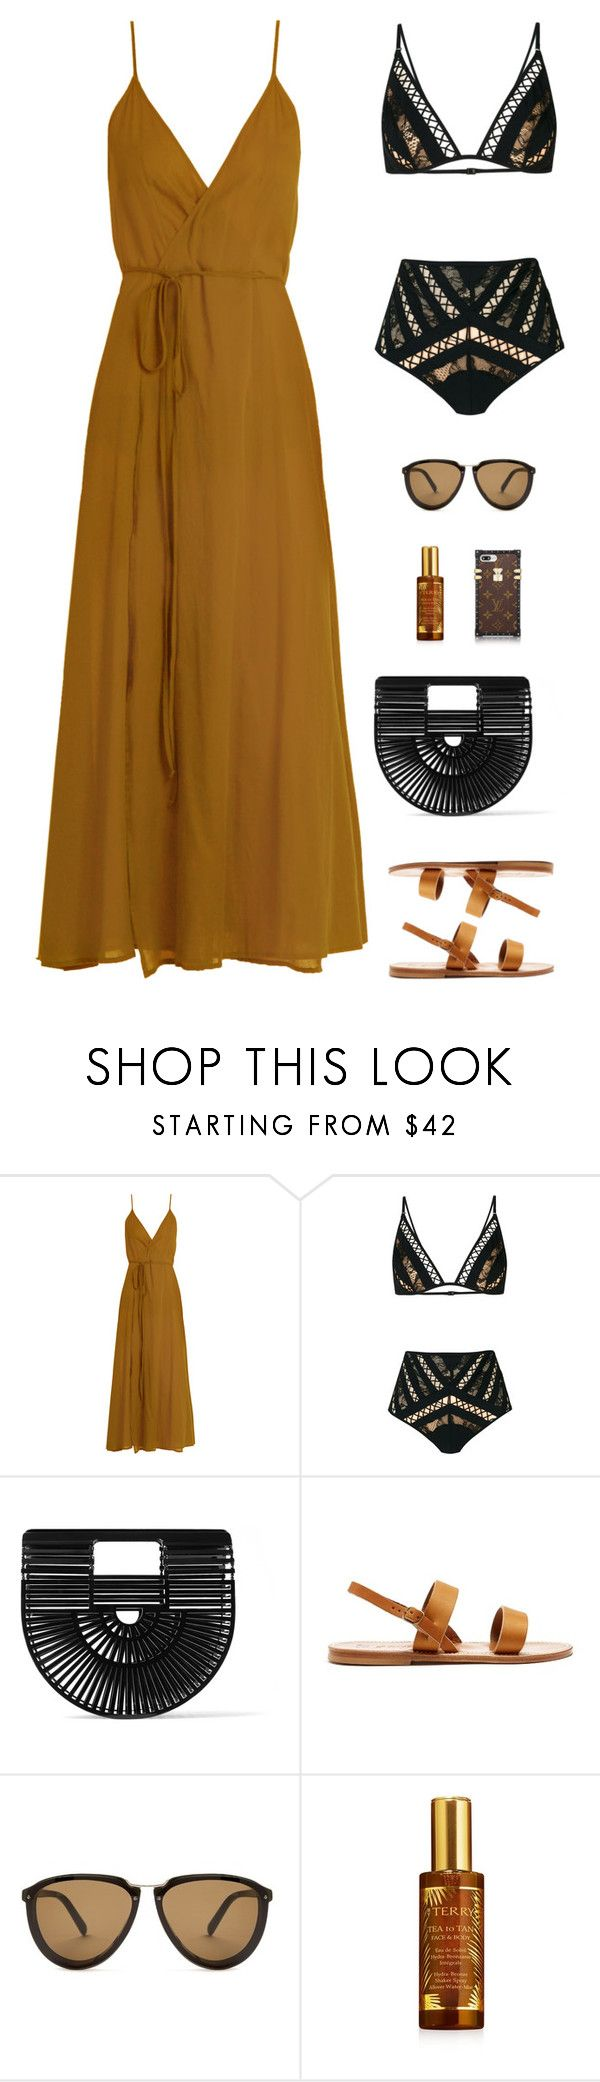 """""""Sin título #4820"""" by mdmsb on Polyvore featuring moda, Loup Charmant, Zimmermann, Cult Gaia, K. Jacques, Marni y By Terry"""